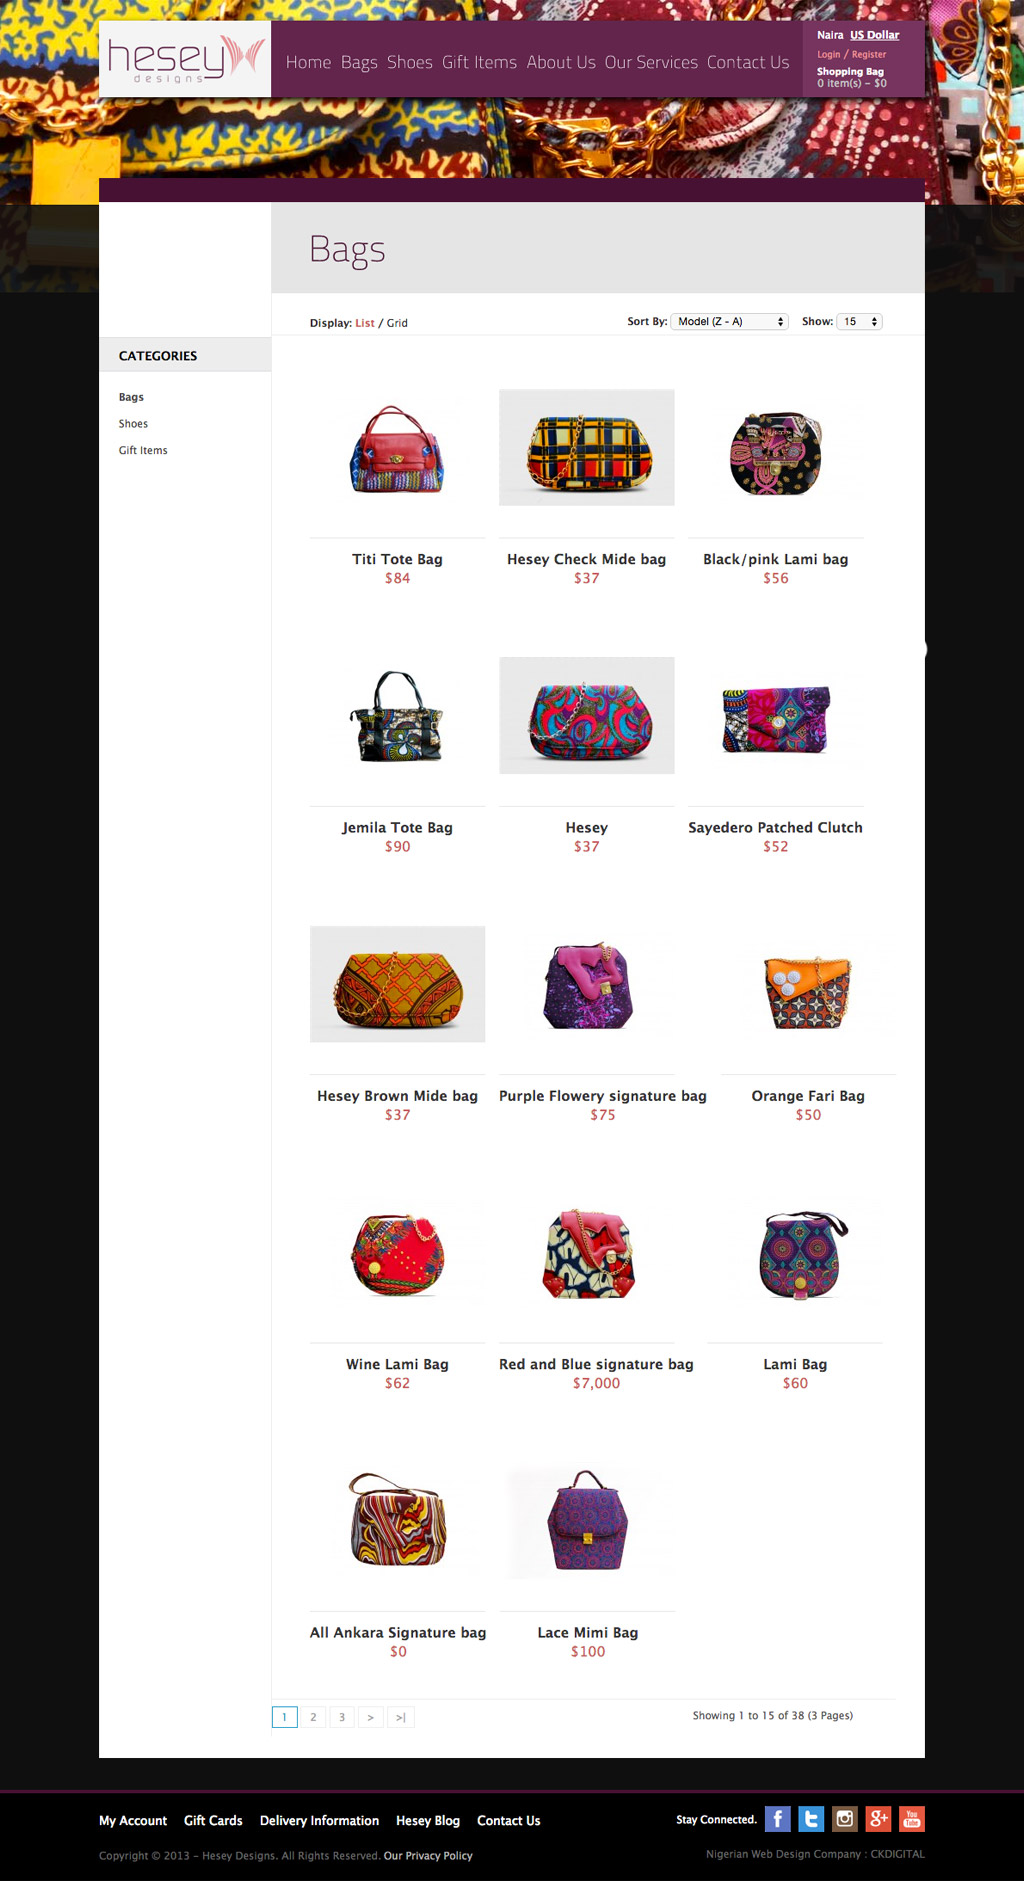 hesey-designs-ecommerce-website-category-page-design